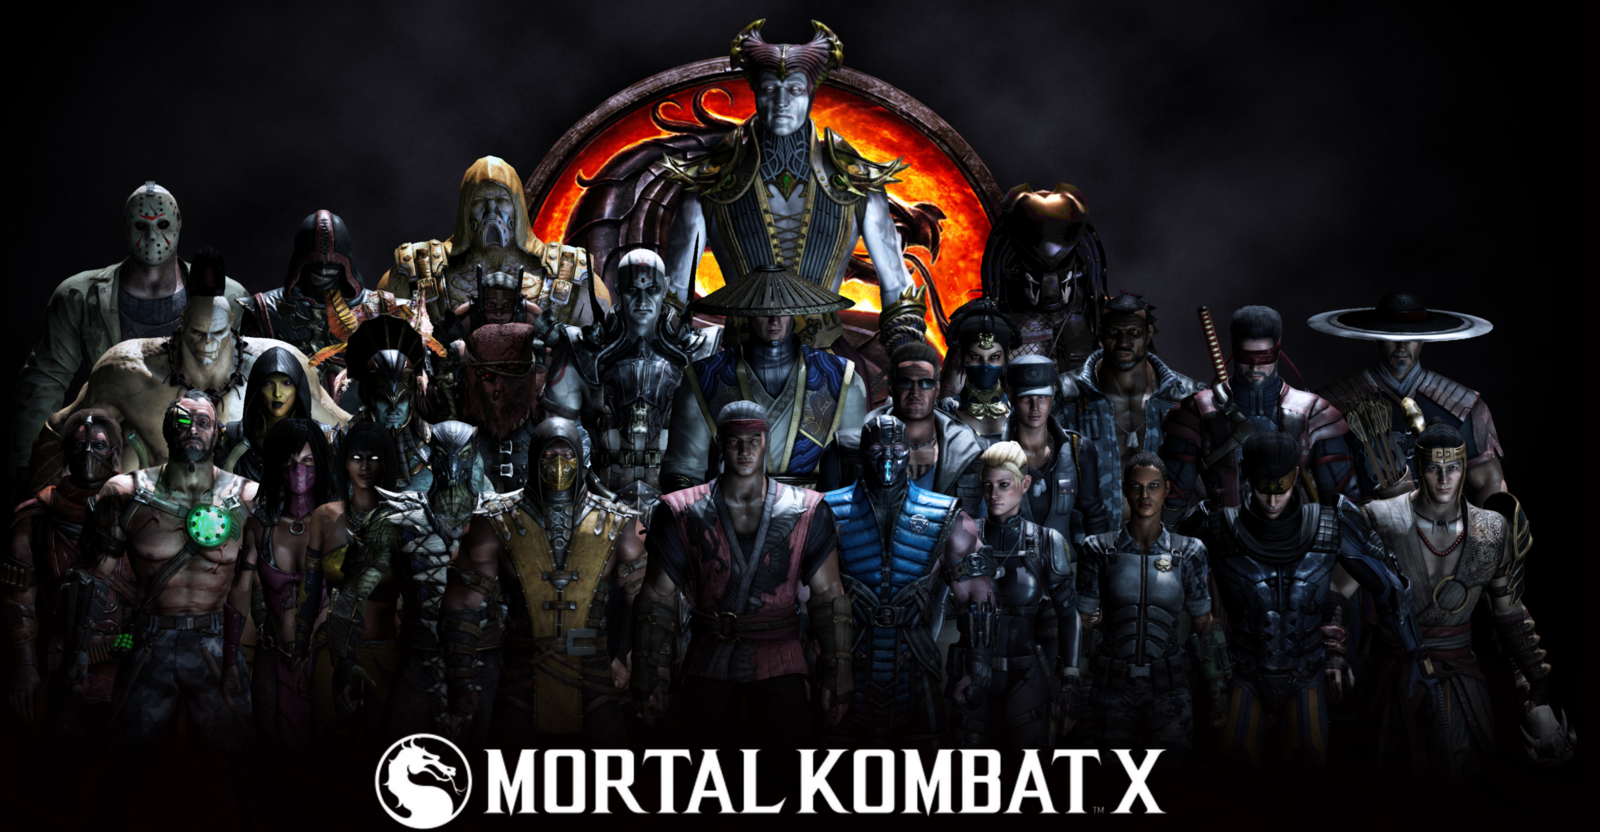 Free Download Mortal Kombat X Wallpaper By Arkhamnatic 1600x832